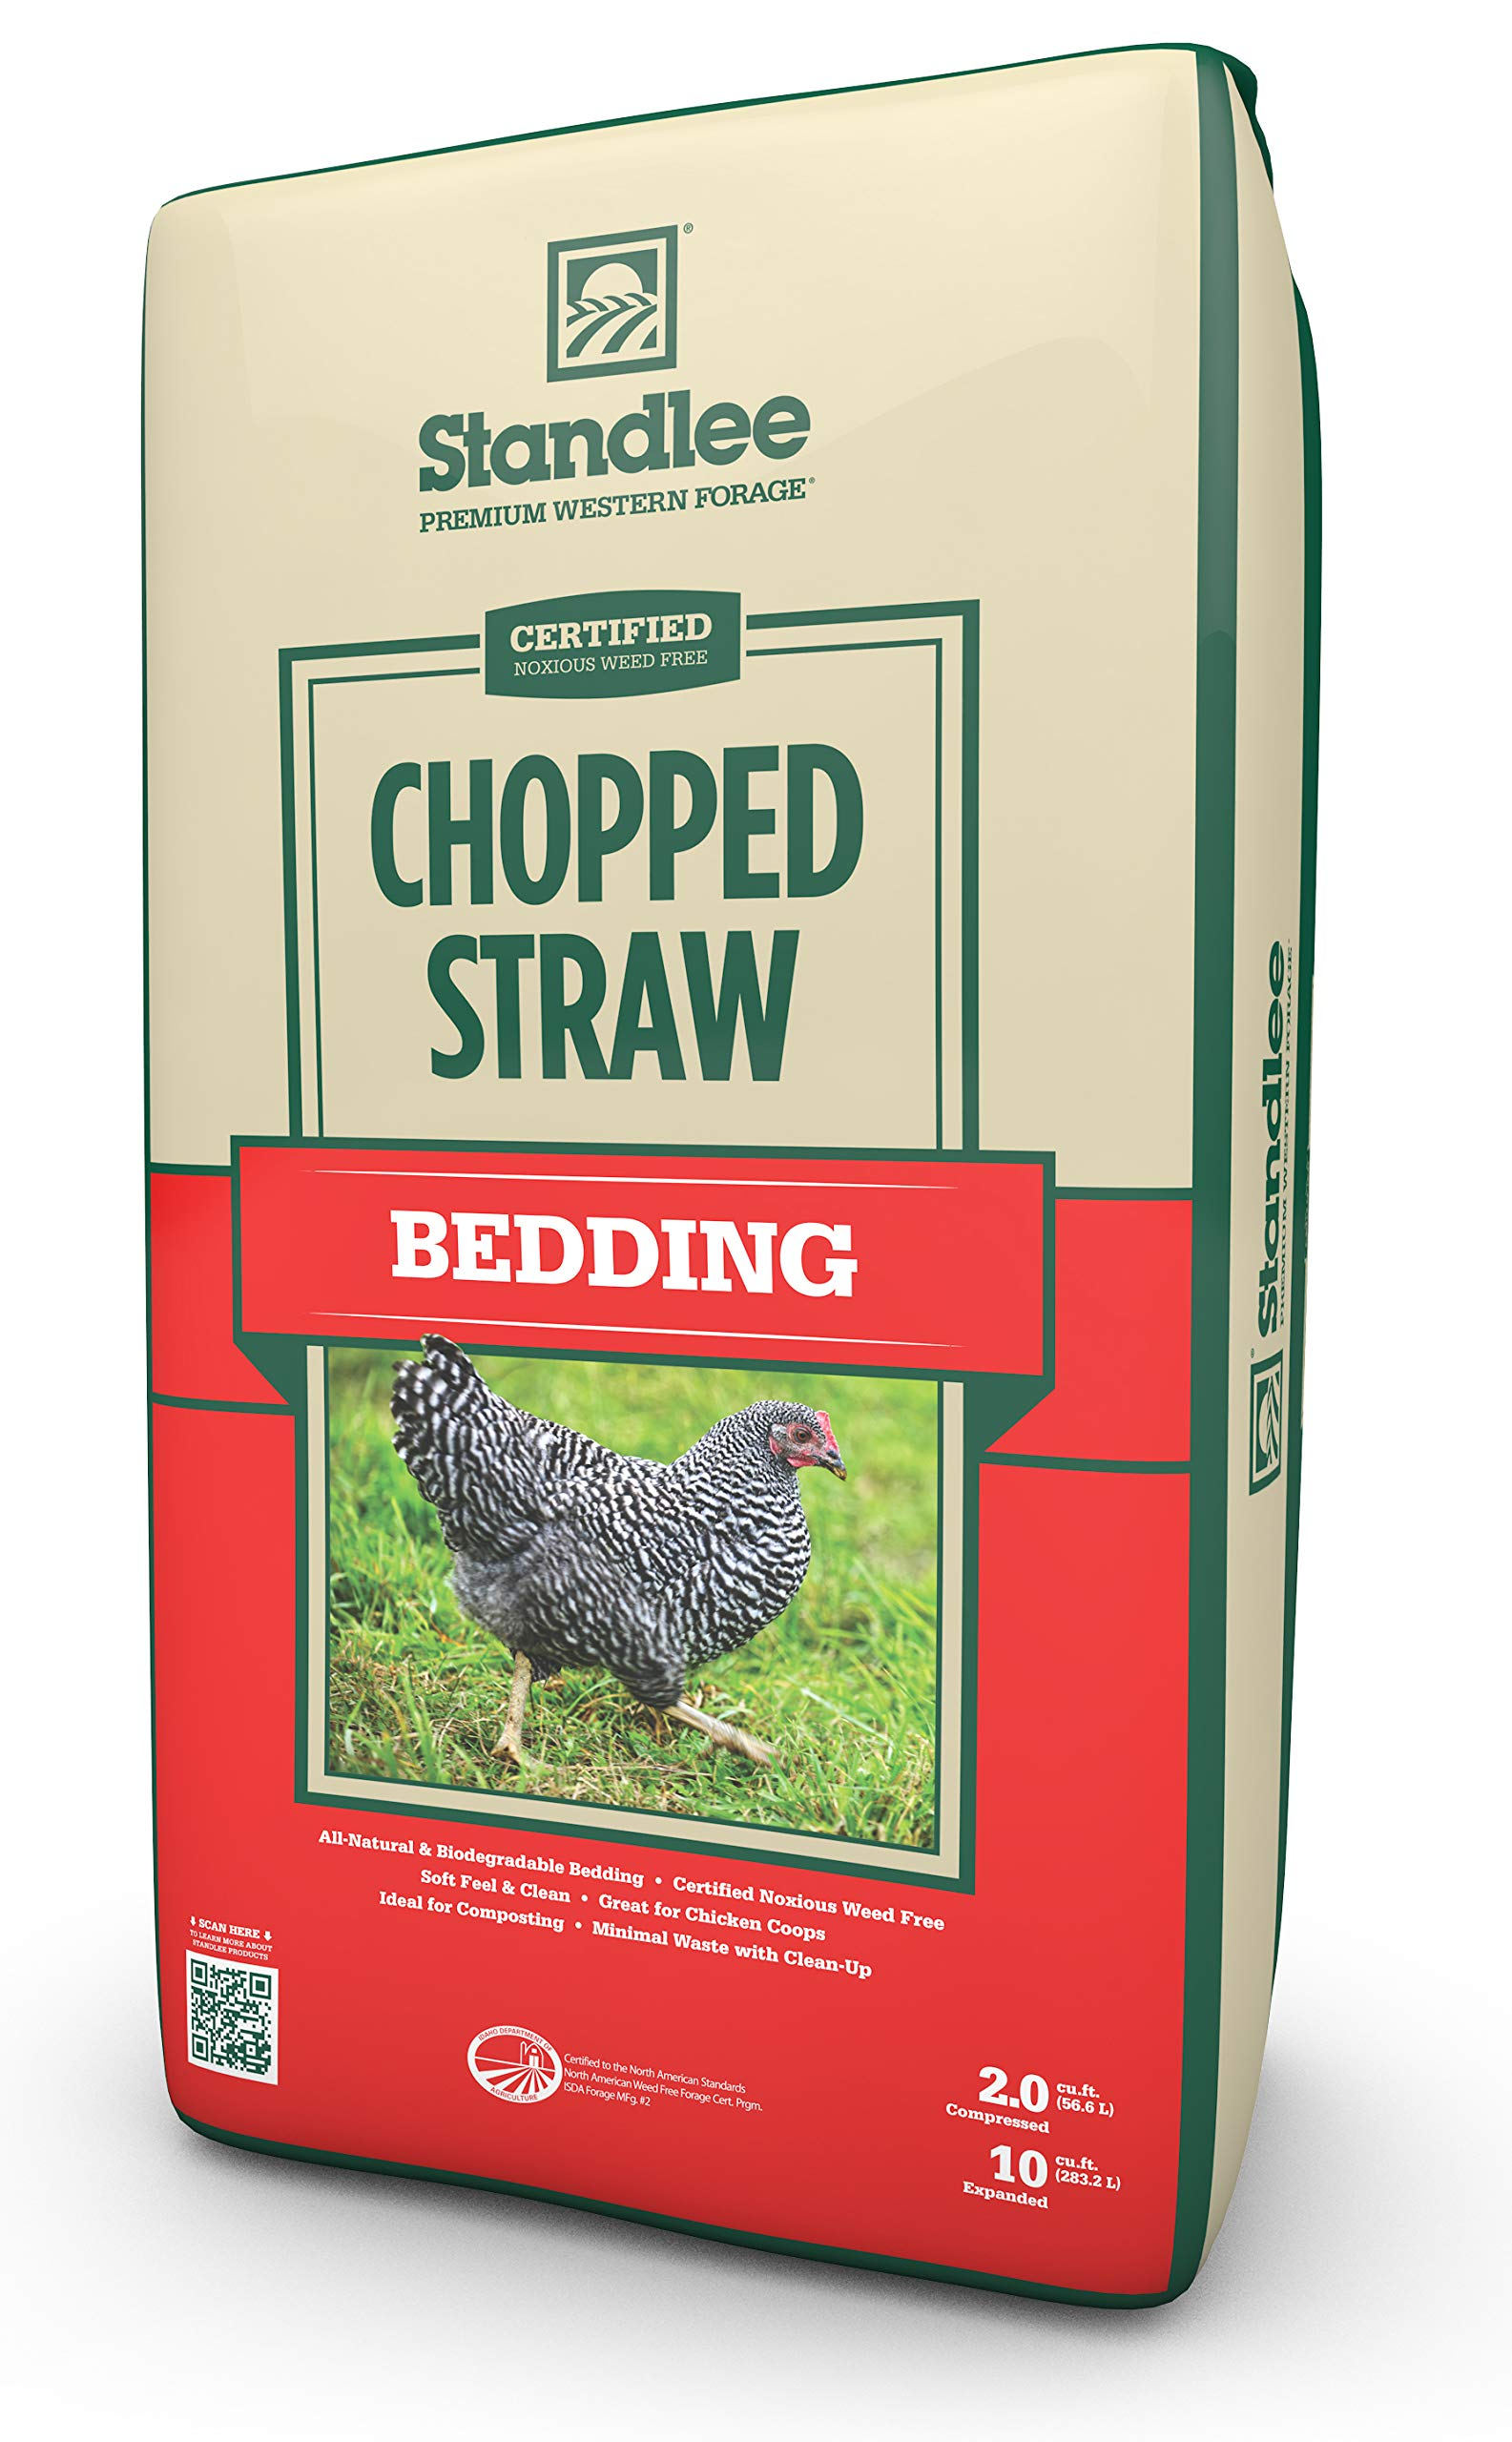 Standlee Hay Company Wheat or Barley Chopped Straw for Animal Bedding by Standlee Hay Company